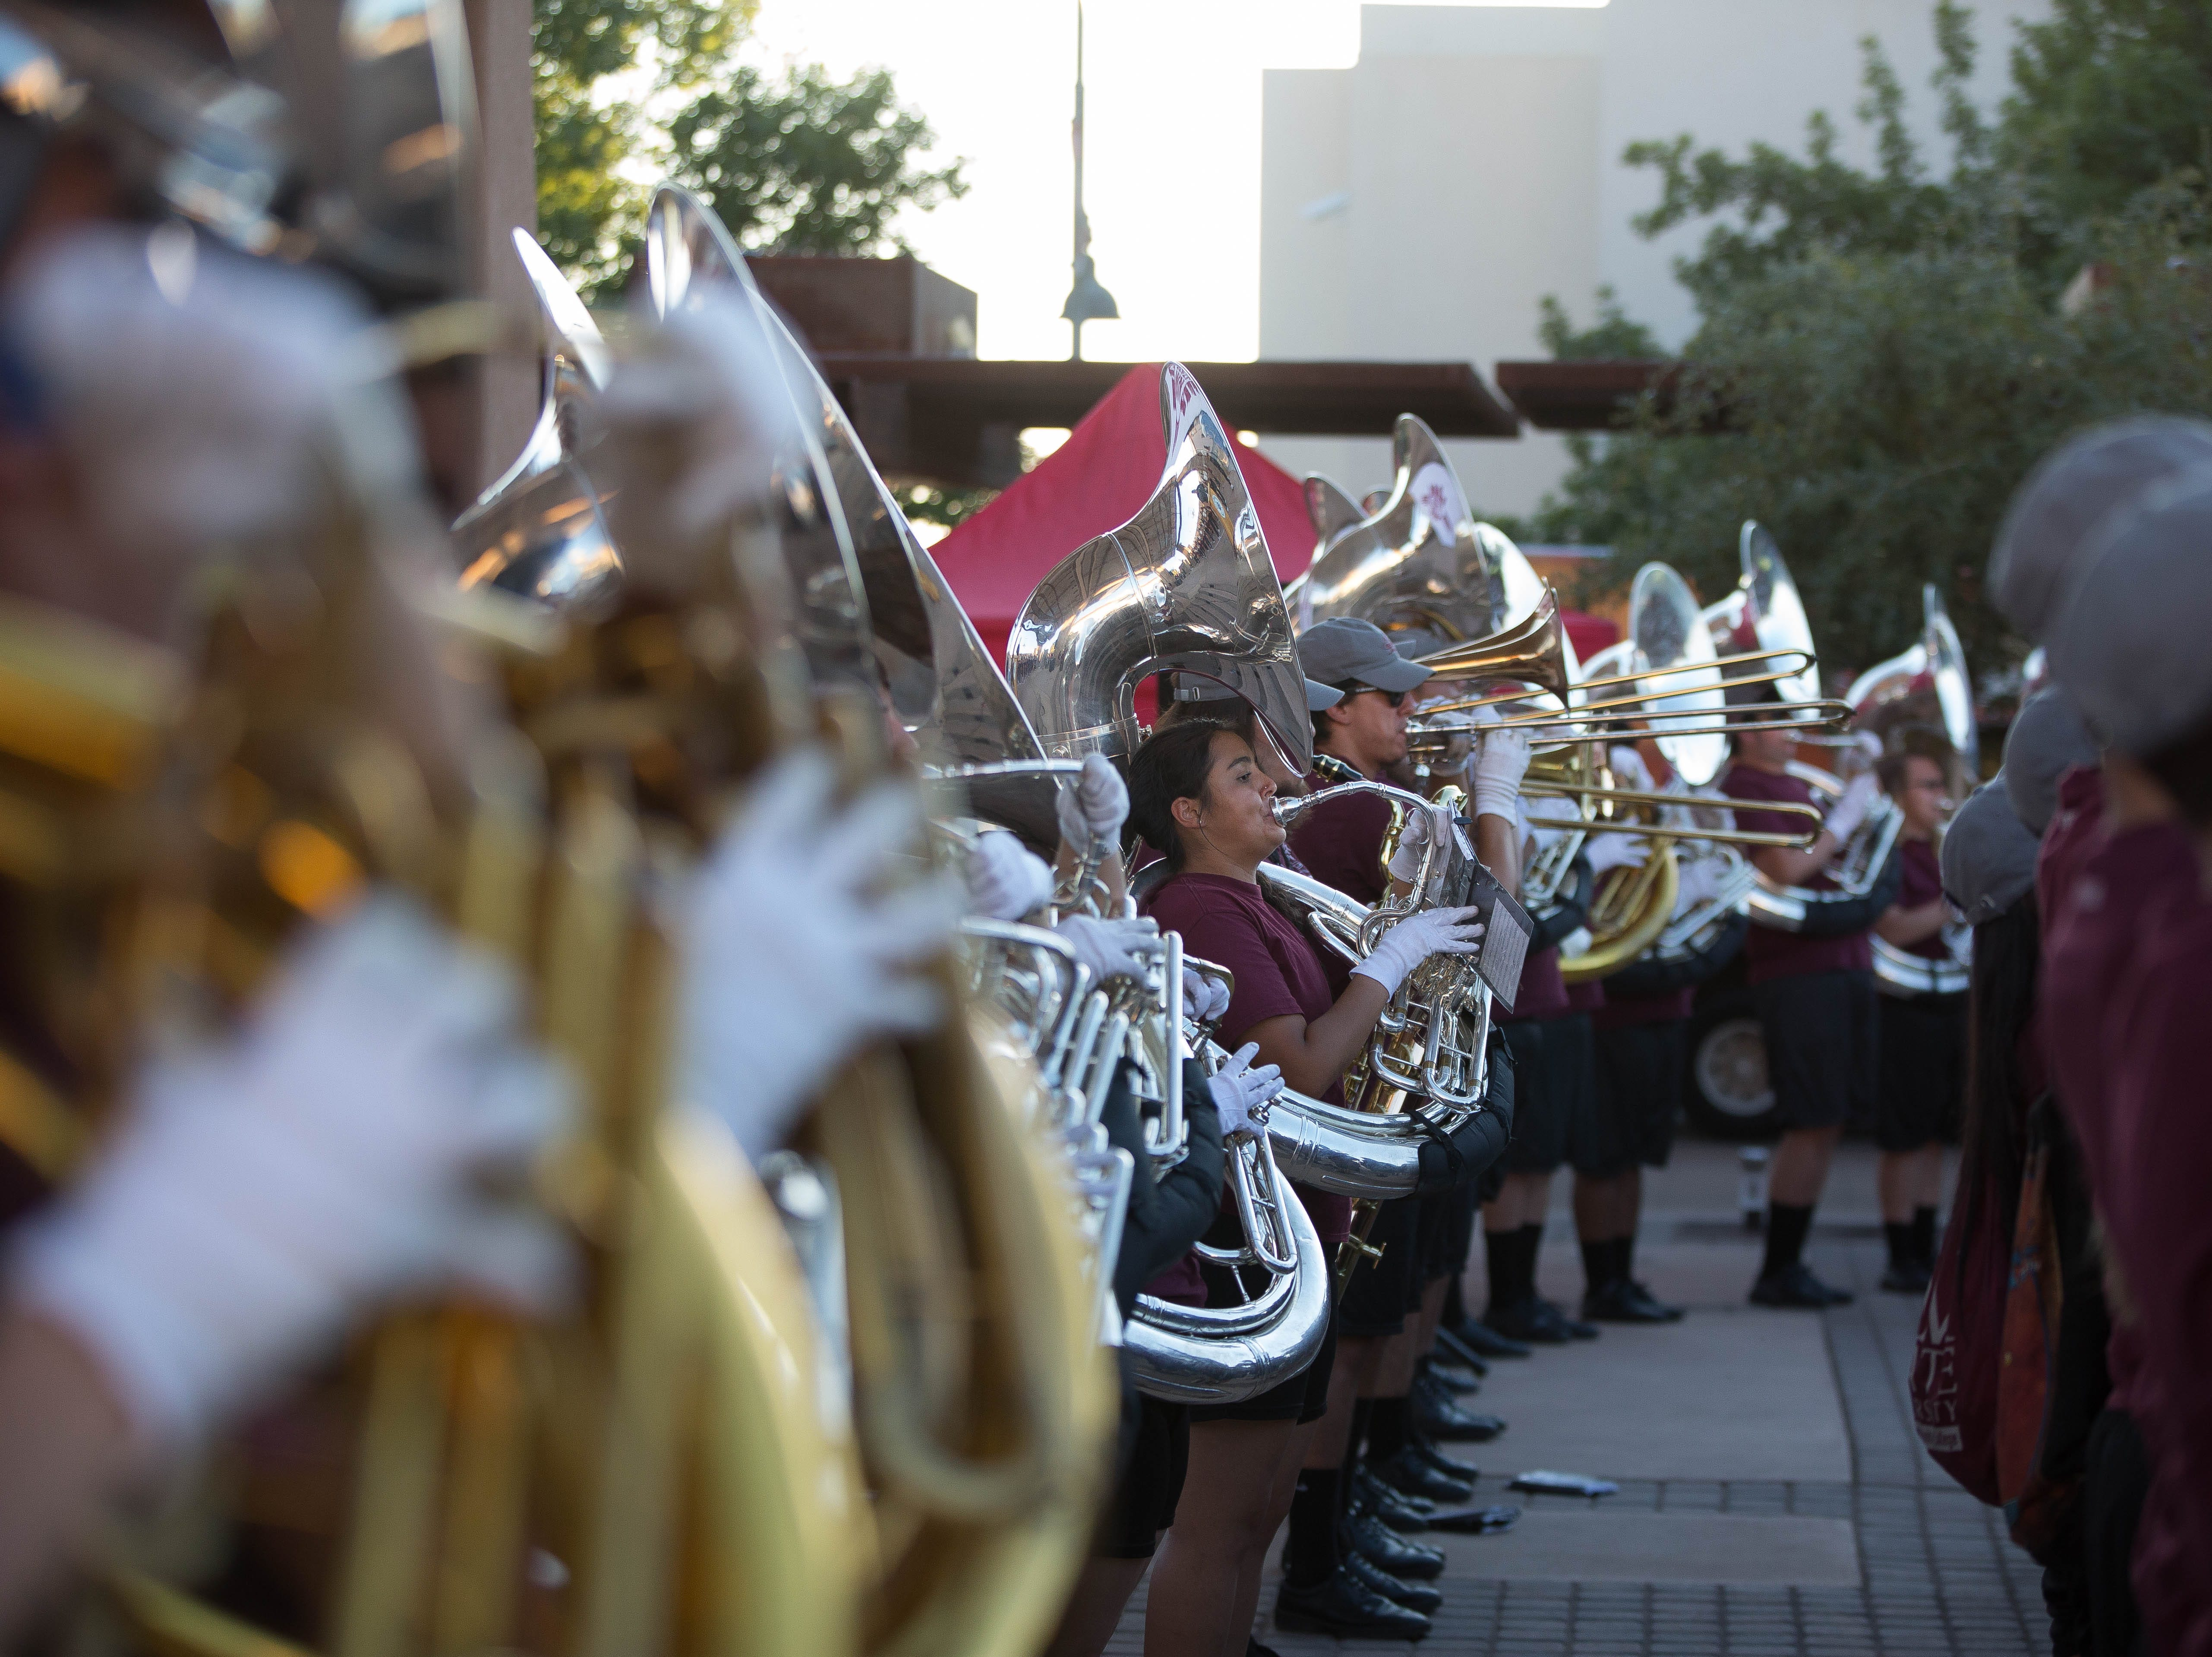 The Pride Band performed at the Downtown Aggie Rally, Friday September 28, 2018, for the fans and Aggie Athletes that gathered at the Plaza de Las Cruces.